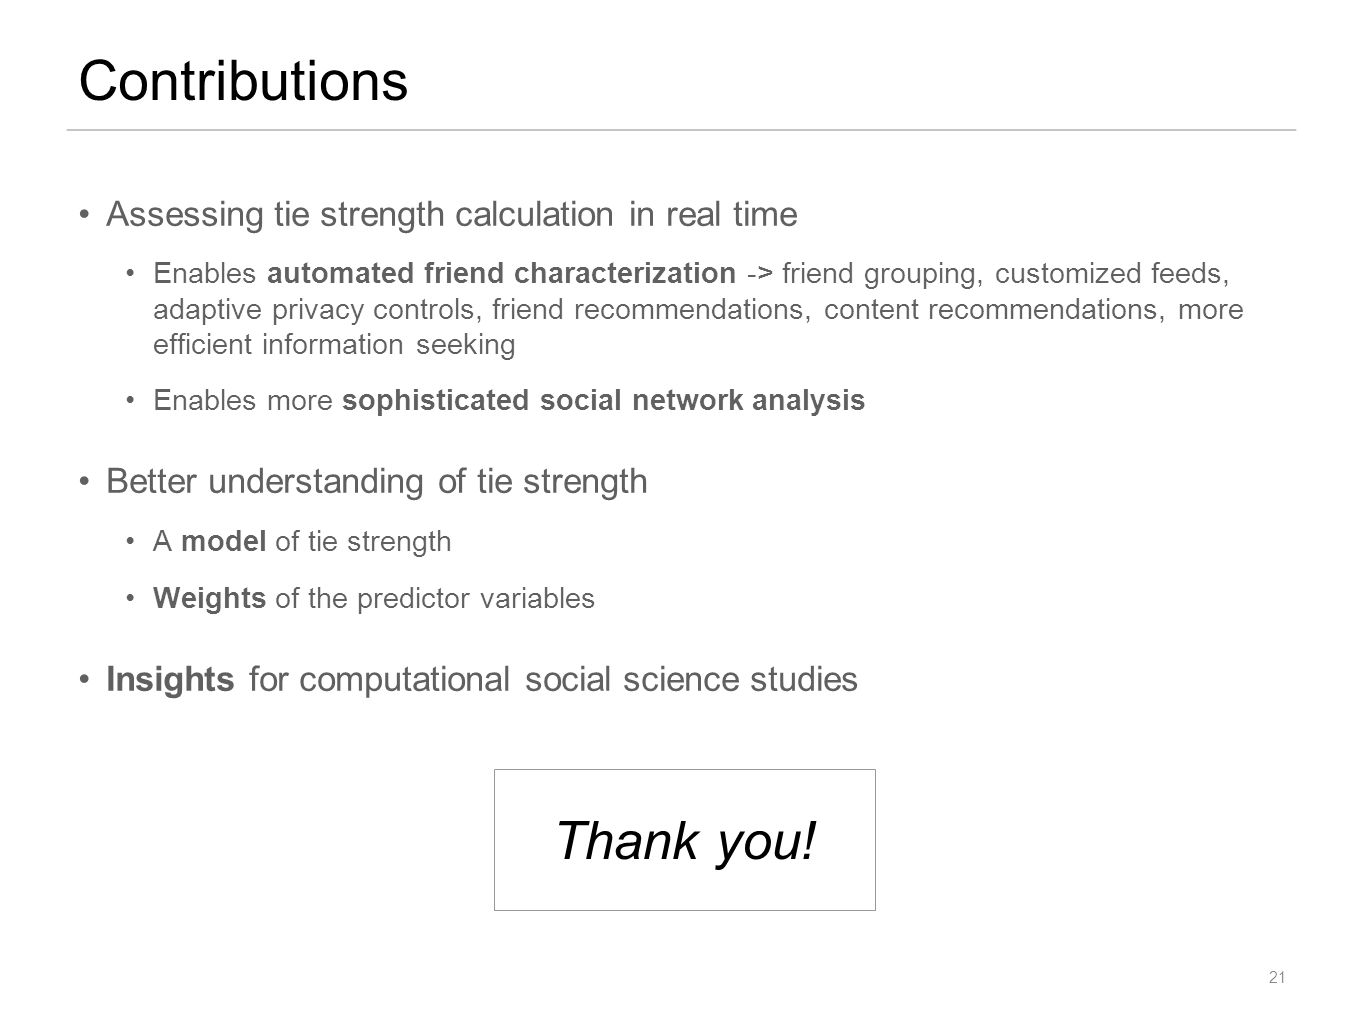 Assessing tie strength calculation in real time Enables automated friend characterization -> friend grouping, customized feeds, adaptive privacy controls, friend recommendations, content recommendations, more efficient information seeking Enables more sophisticated social network analysis Better understanding of tie strength A model of tie strength Weights of the predictor variables Insights for computational social science studies Contributions 21 Thank you!